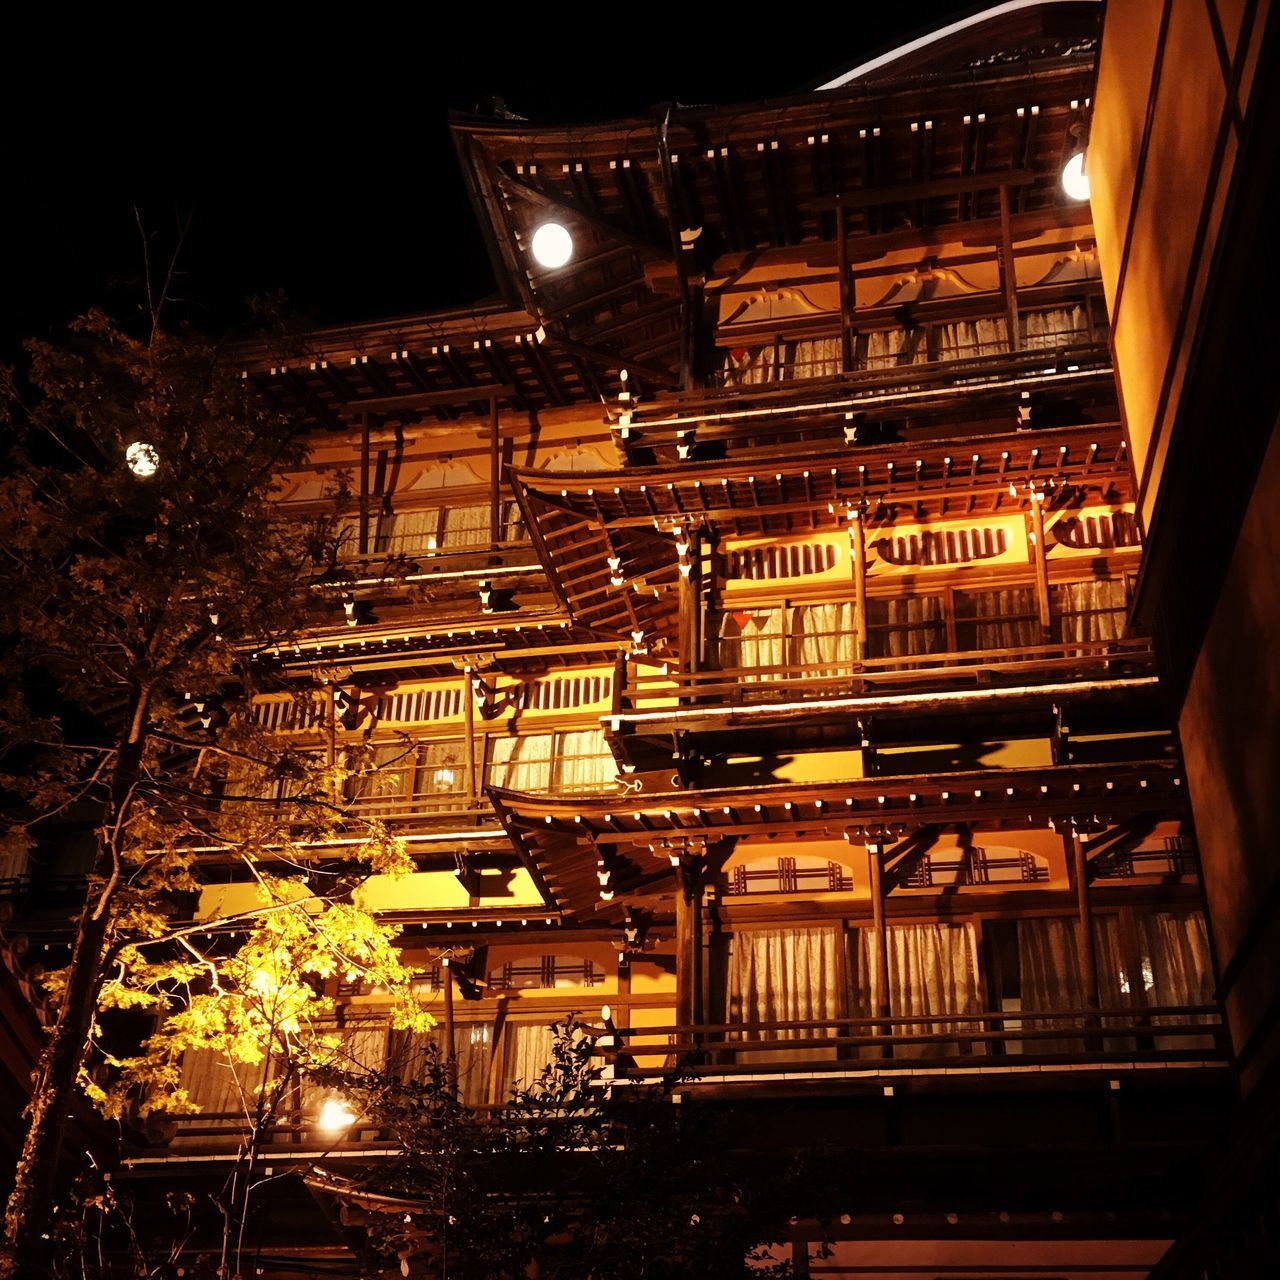 onsen Onsen Night Low Angle View Illuminated Architecture Built Structure Building Exterior No People Outdoors First Eyeem Photo The Architect - 2017 EyeEm Awards